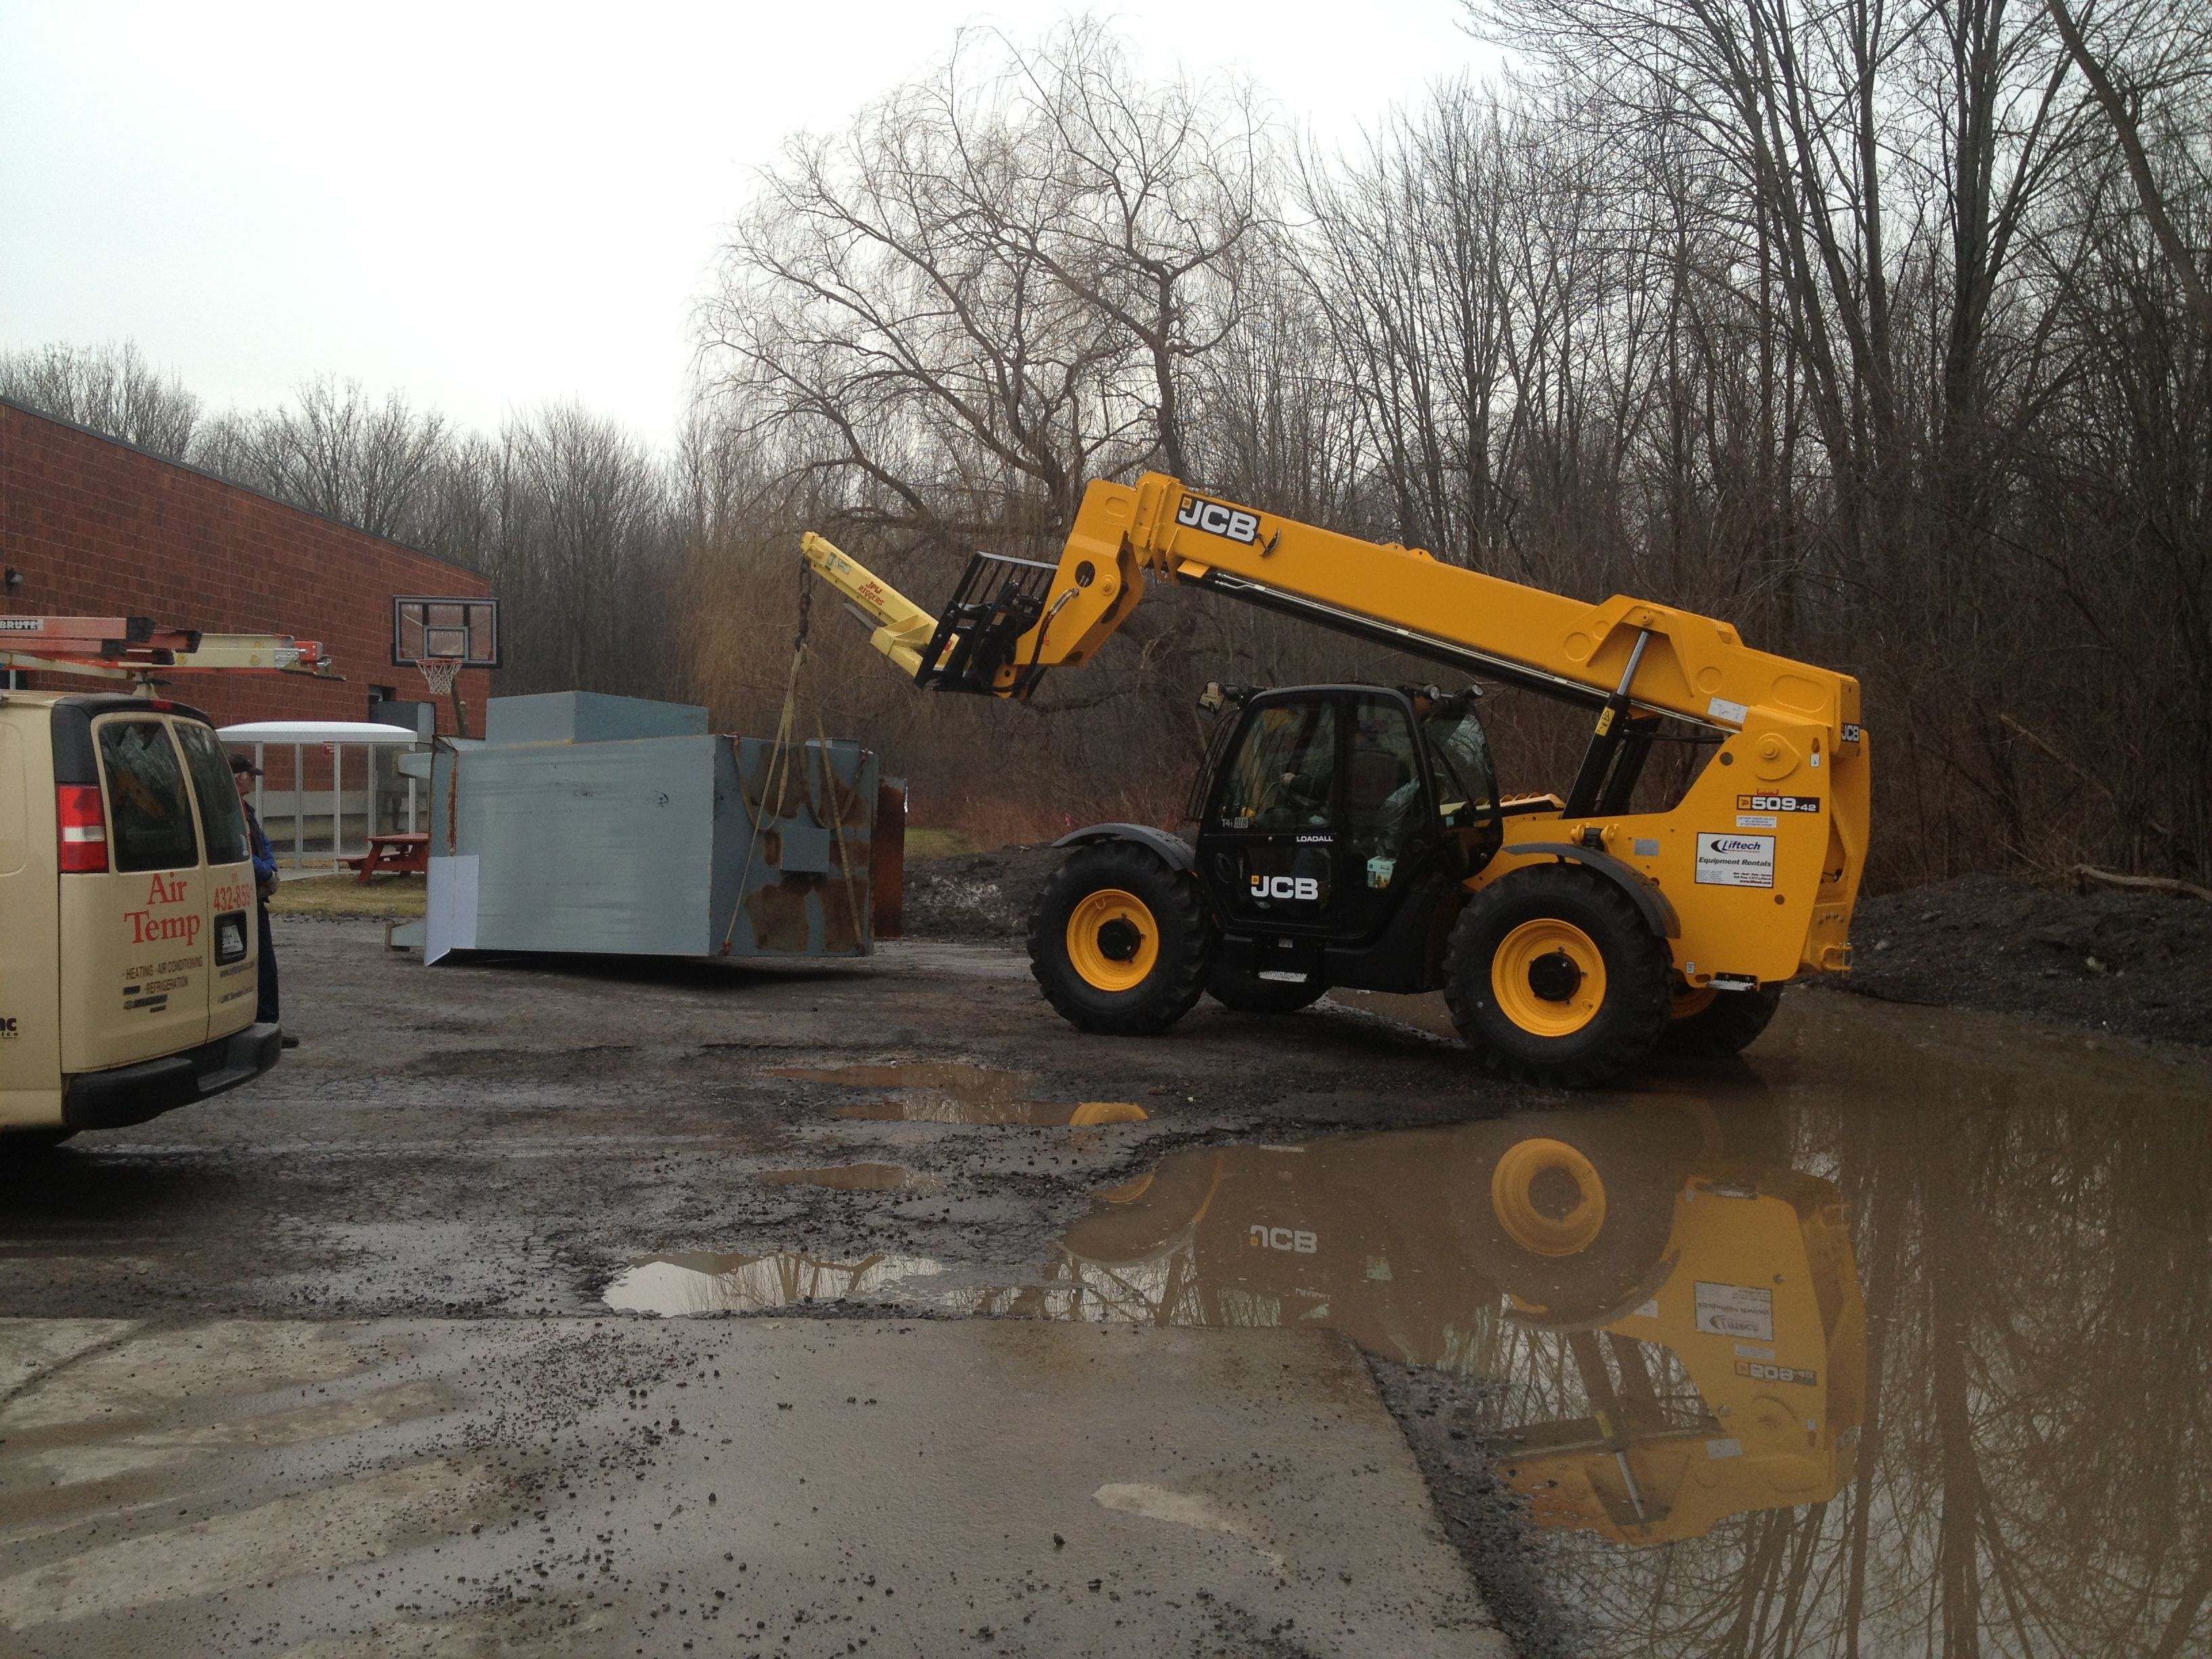 Pin on LARGE FORK TRUCKS IN SYRACUSE NEW YORK FOR RENT